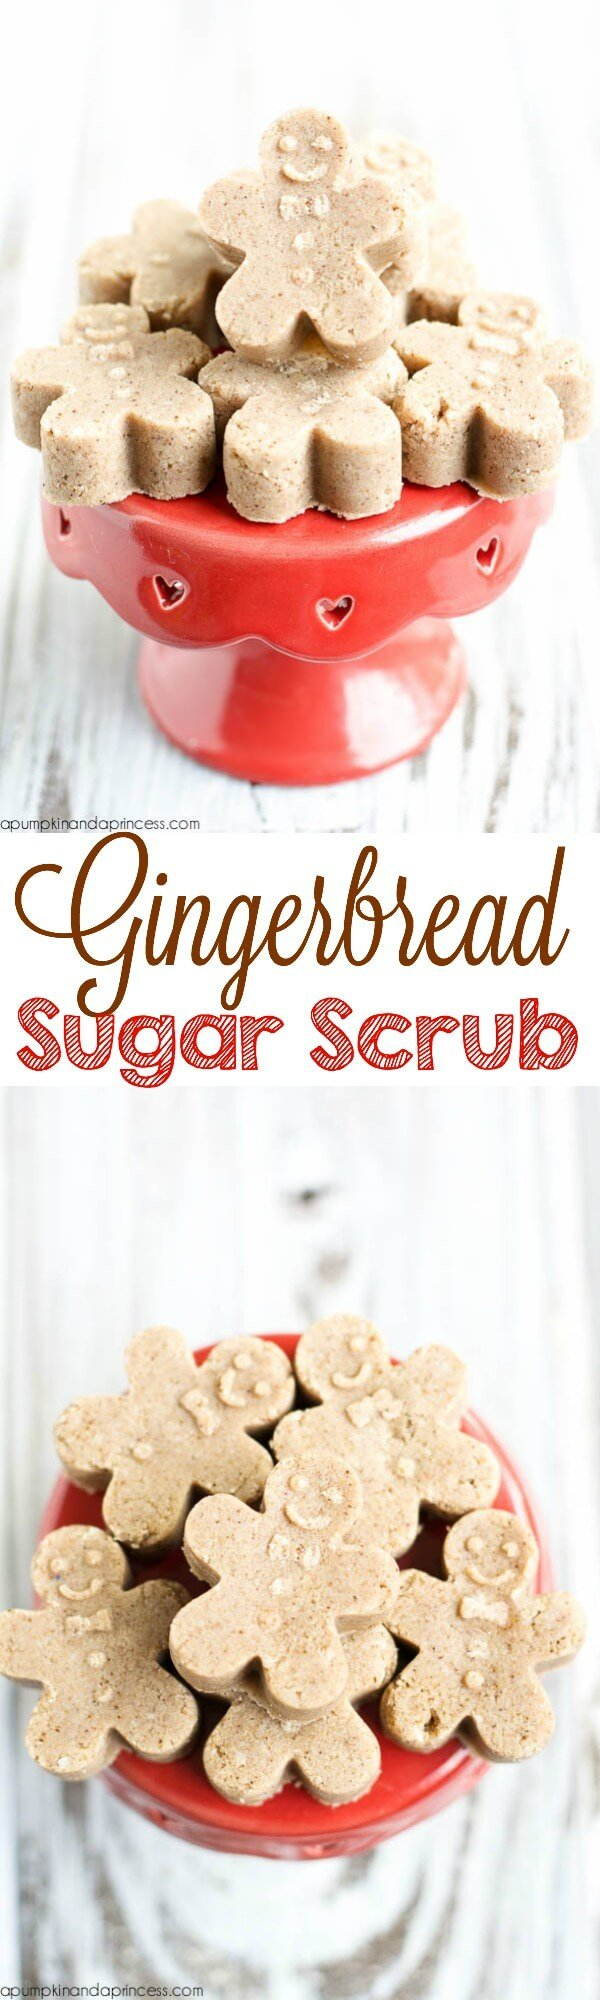 Gingerbread-Sugar-Scrub